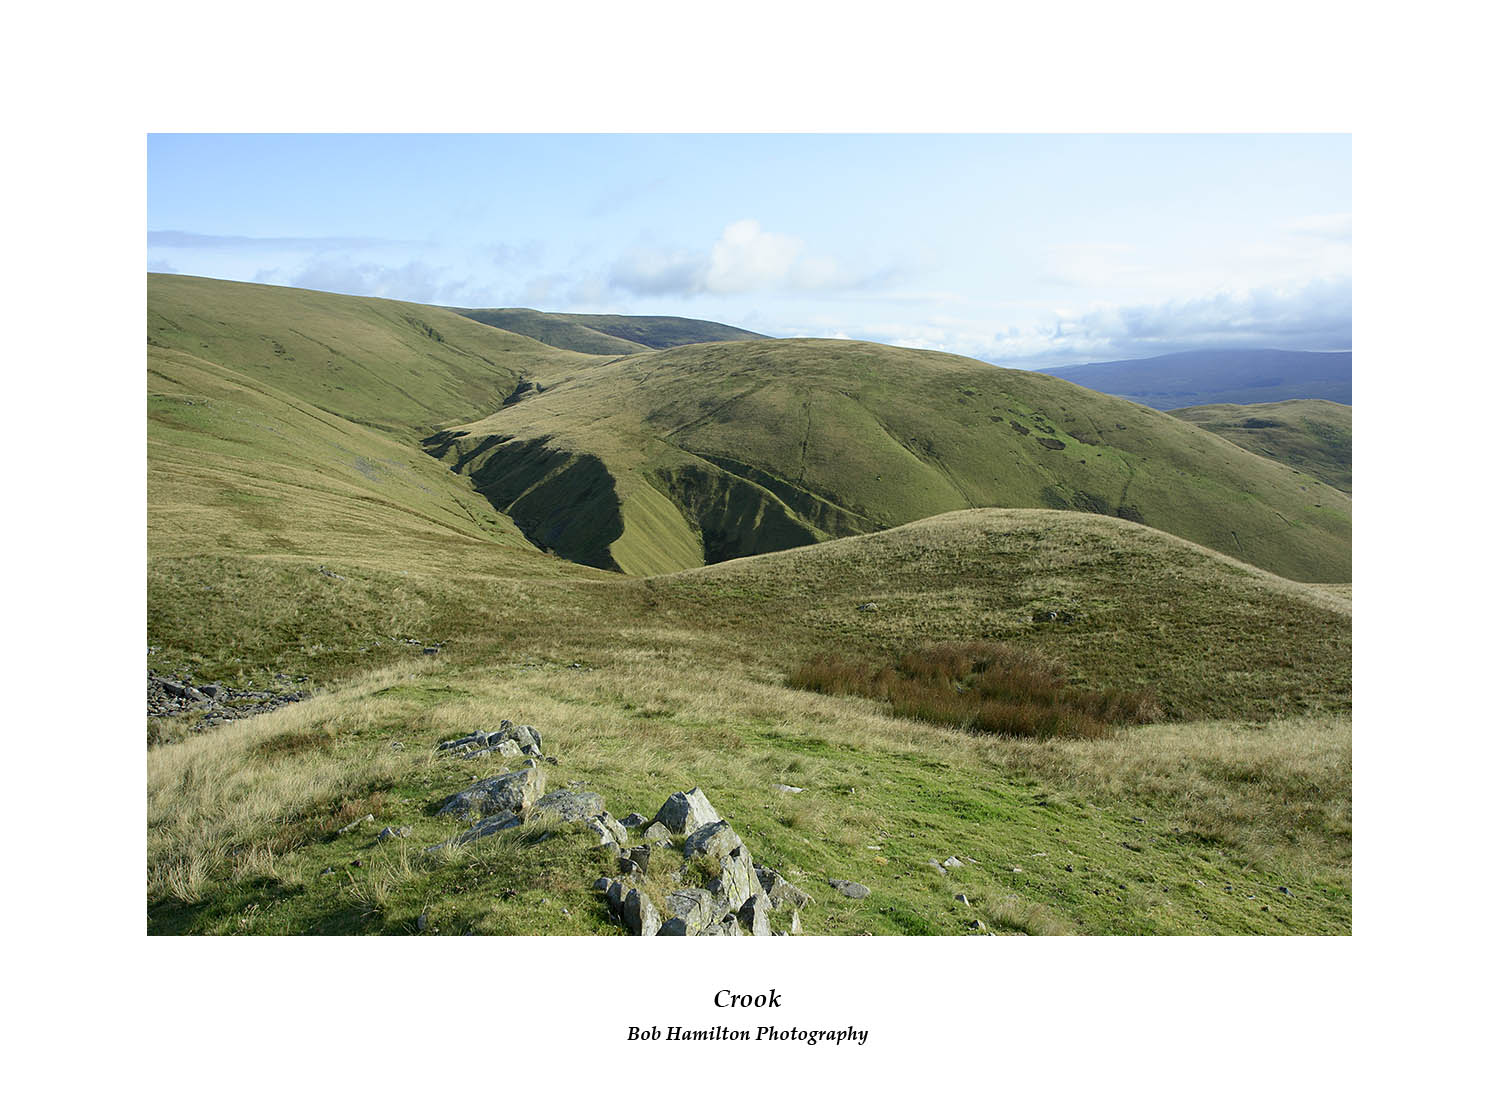 MG 2374 Ashbeck Fold and Sickers Fell from Crook the Howgill fells